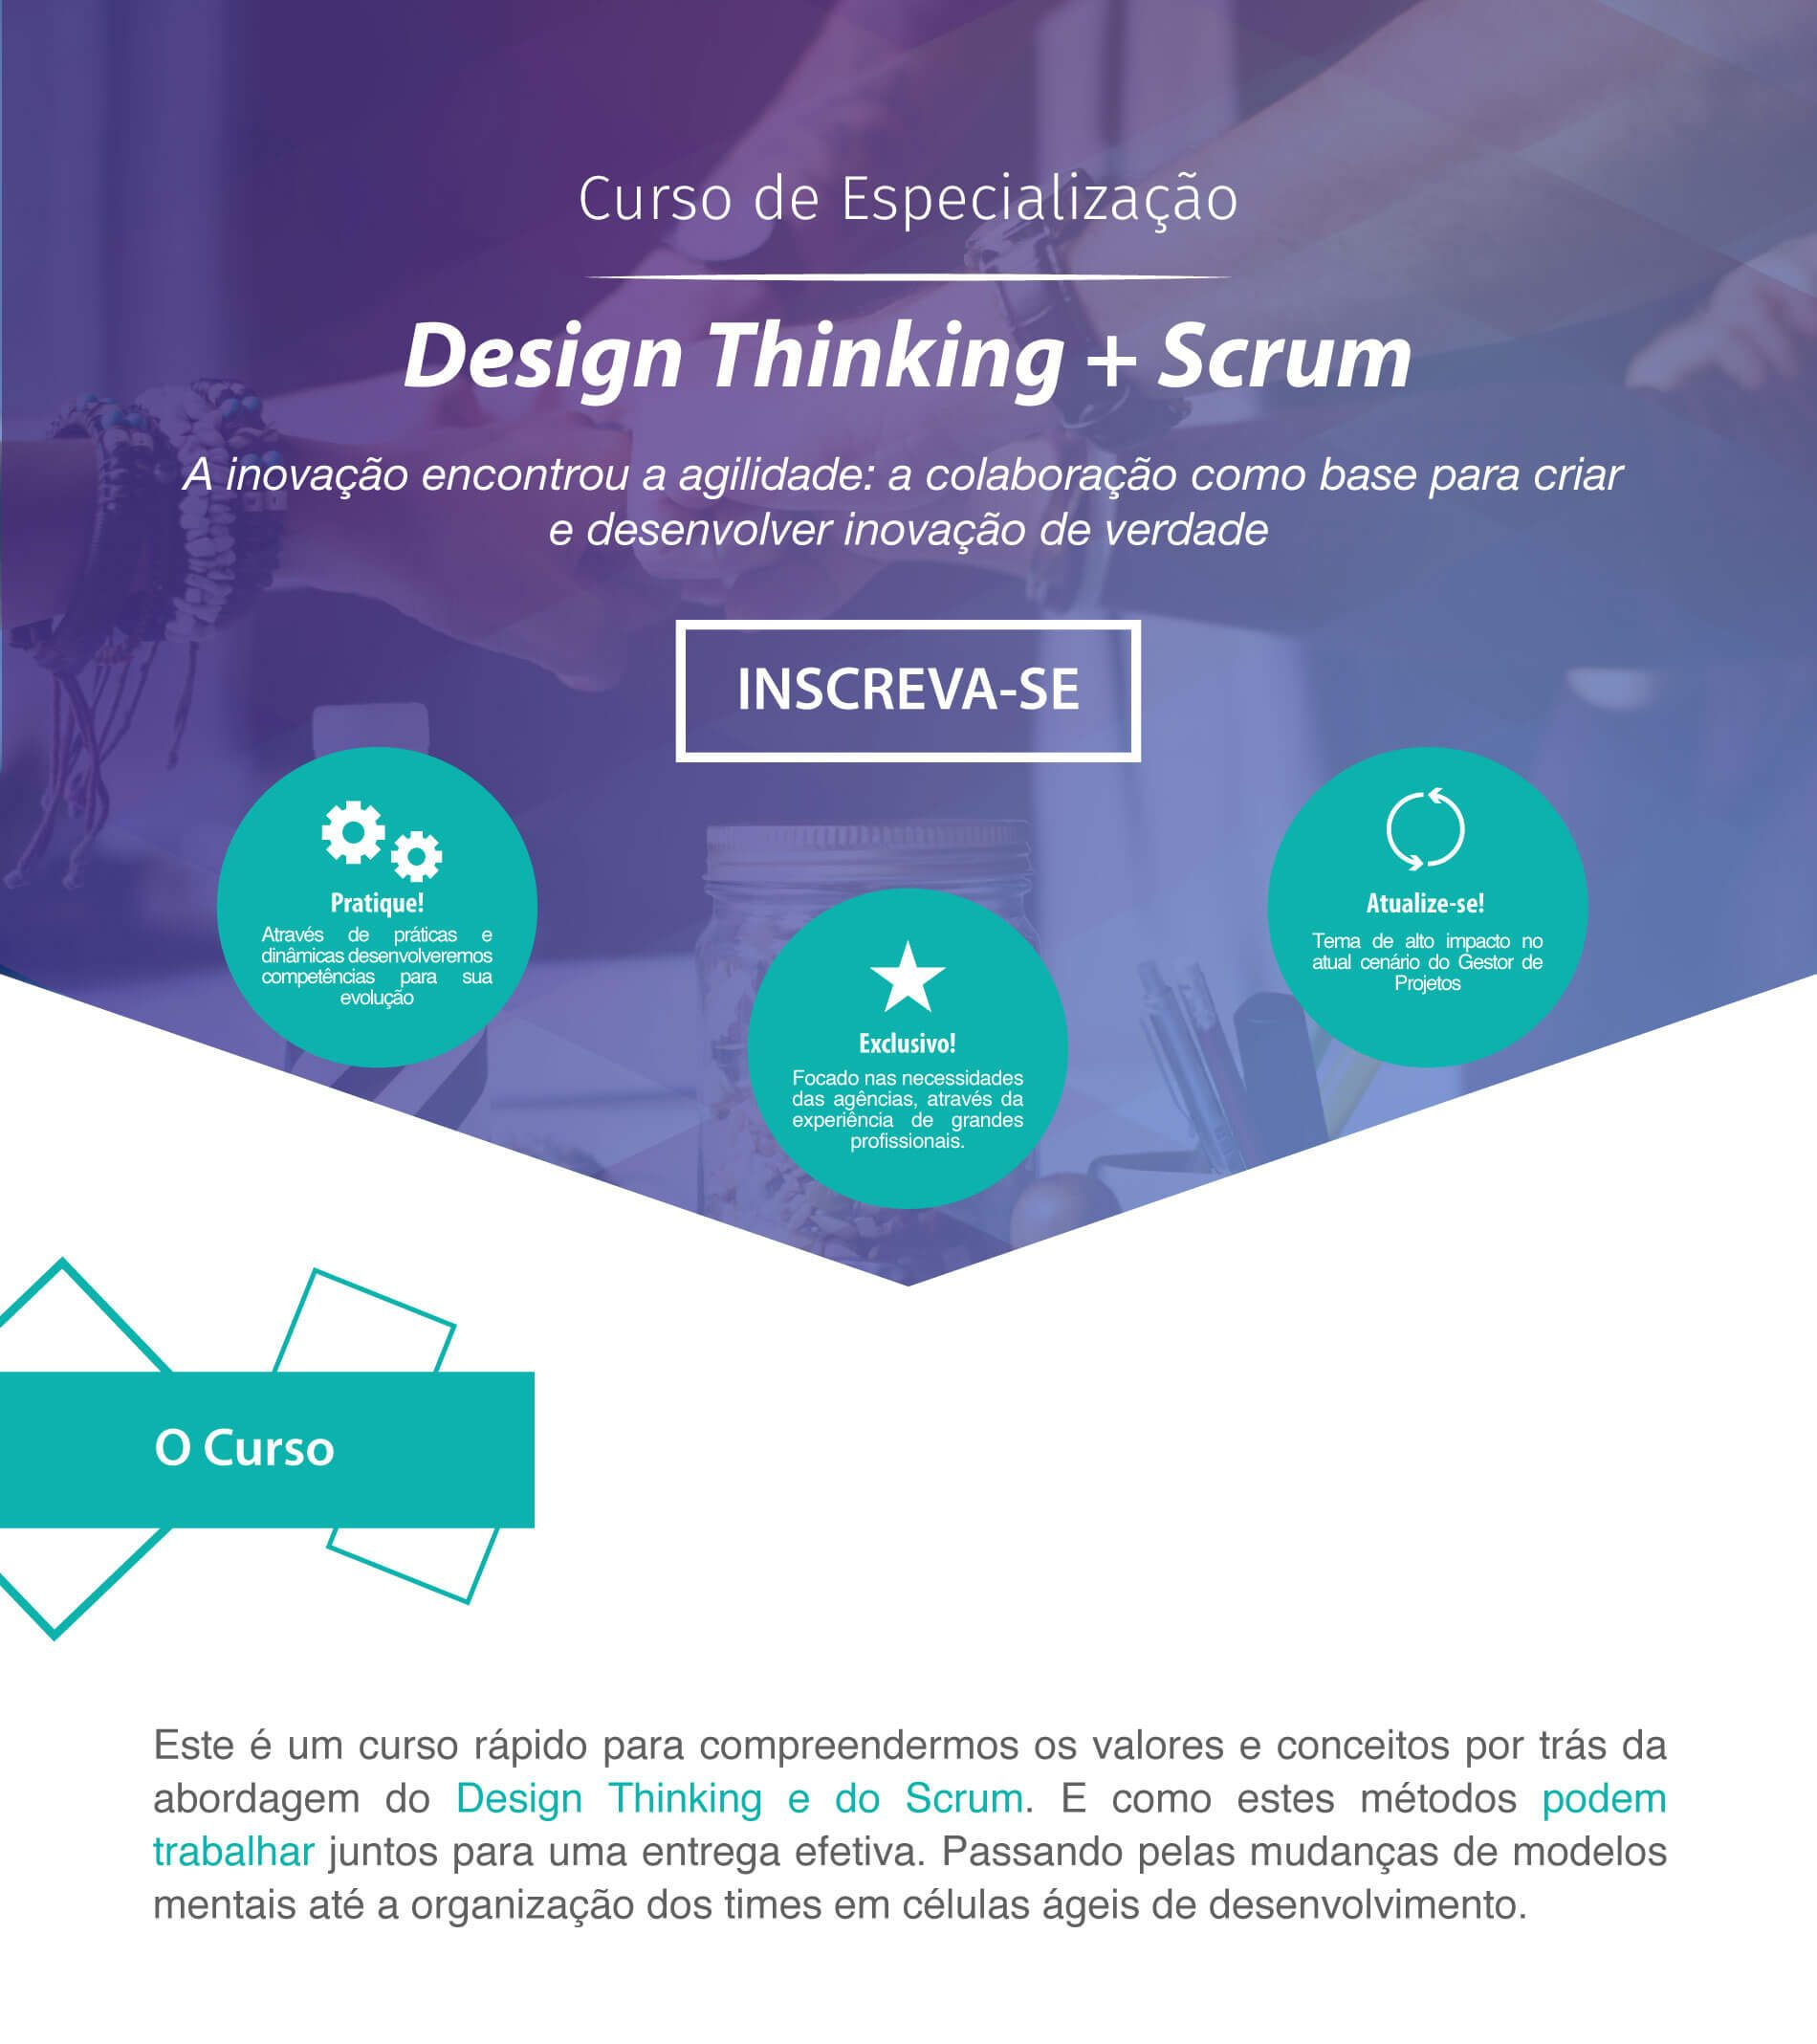 Curso: Design Thinking + Scrum